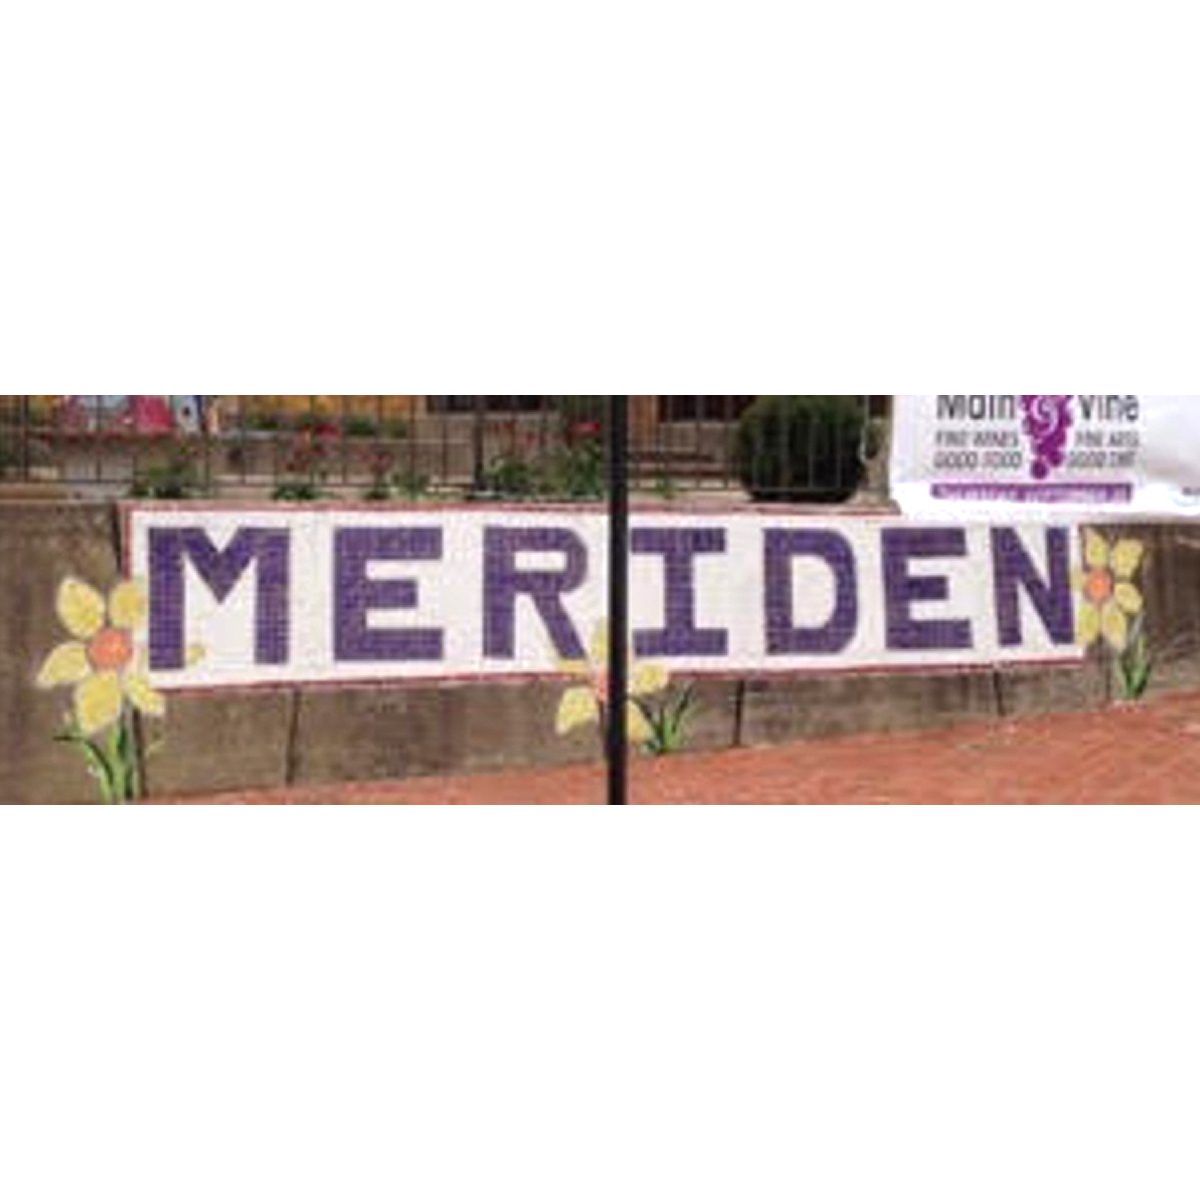 Meriden Welcome Wall by Lincoln Middle School 8th graders, 16 ft long